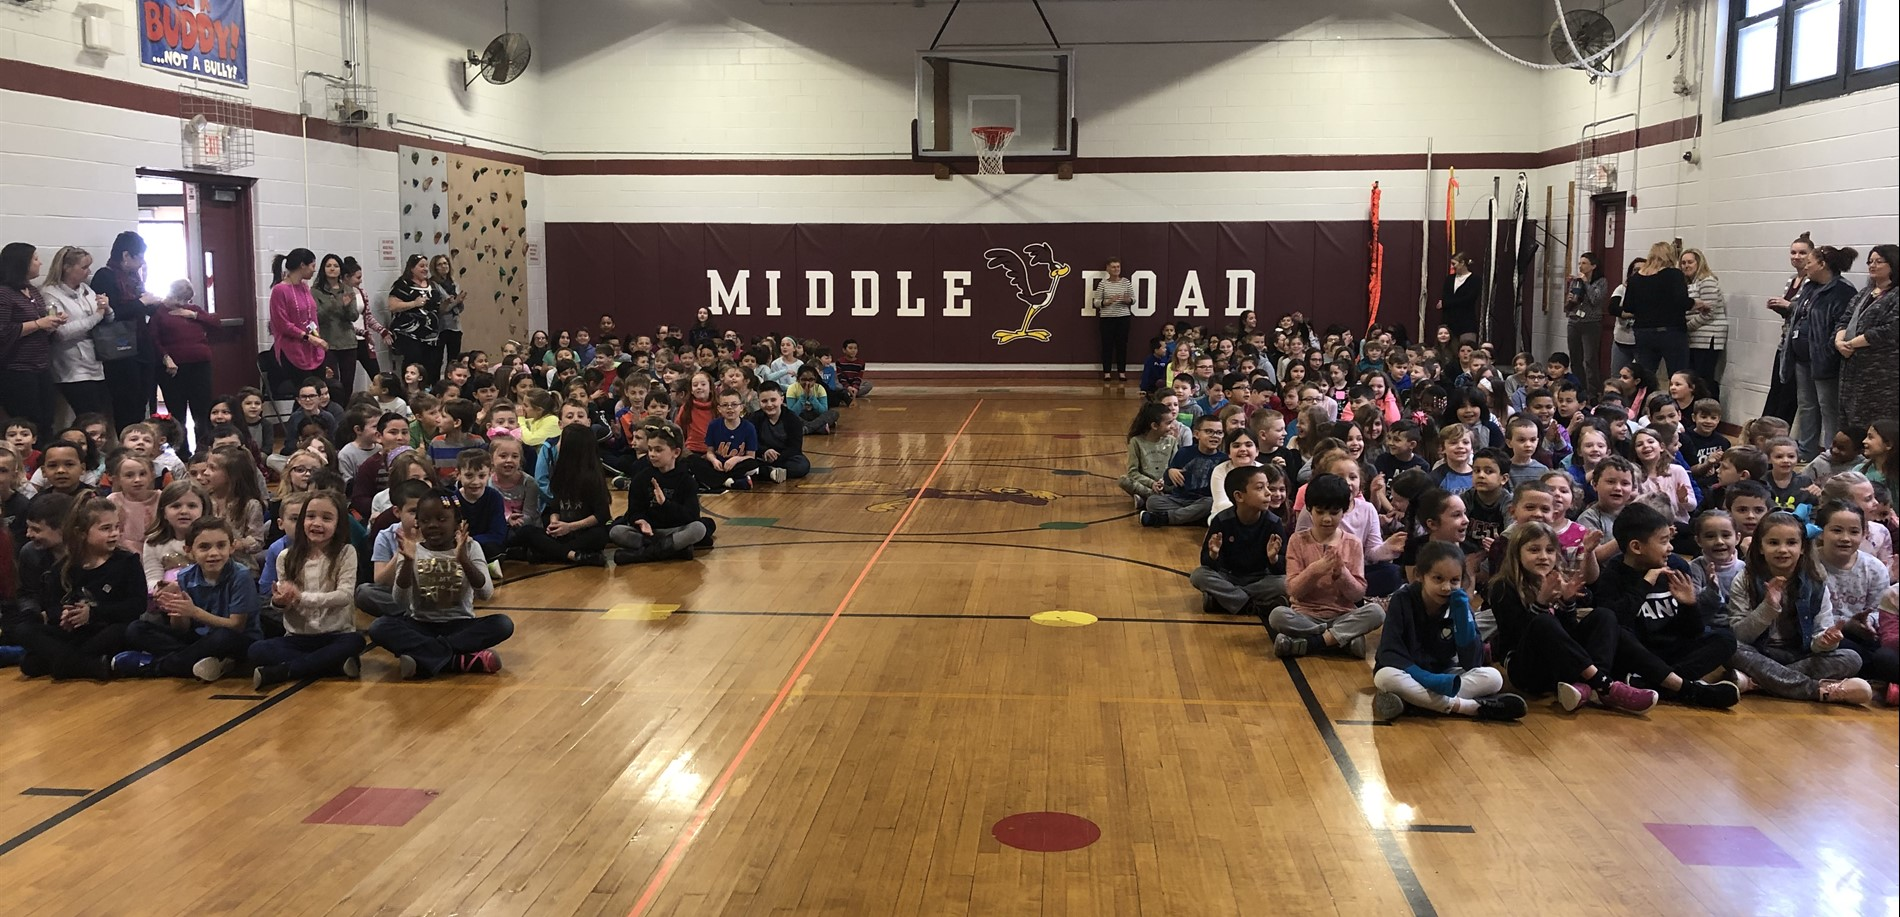 Middle Road School